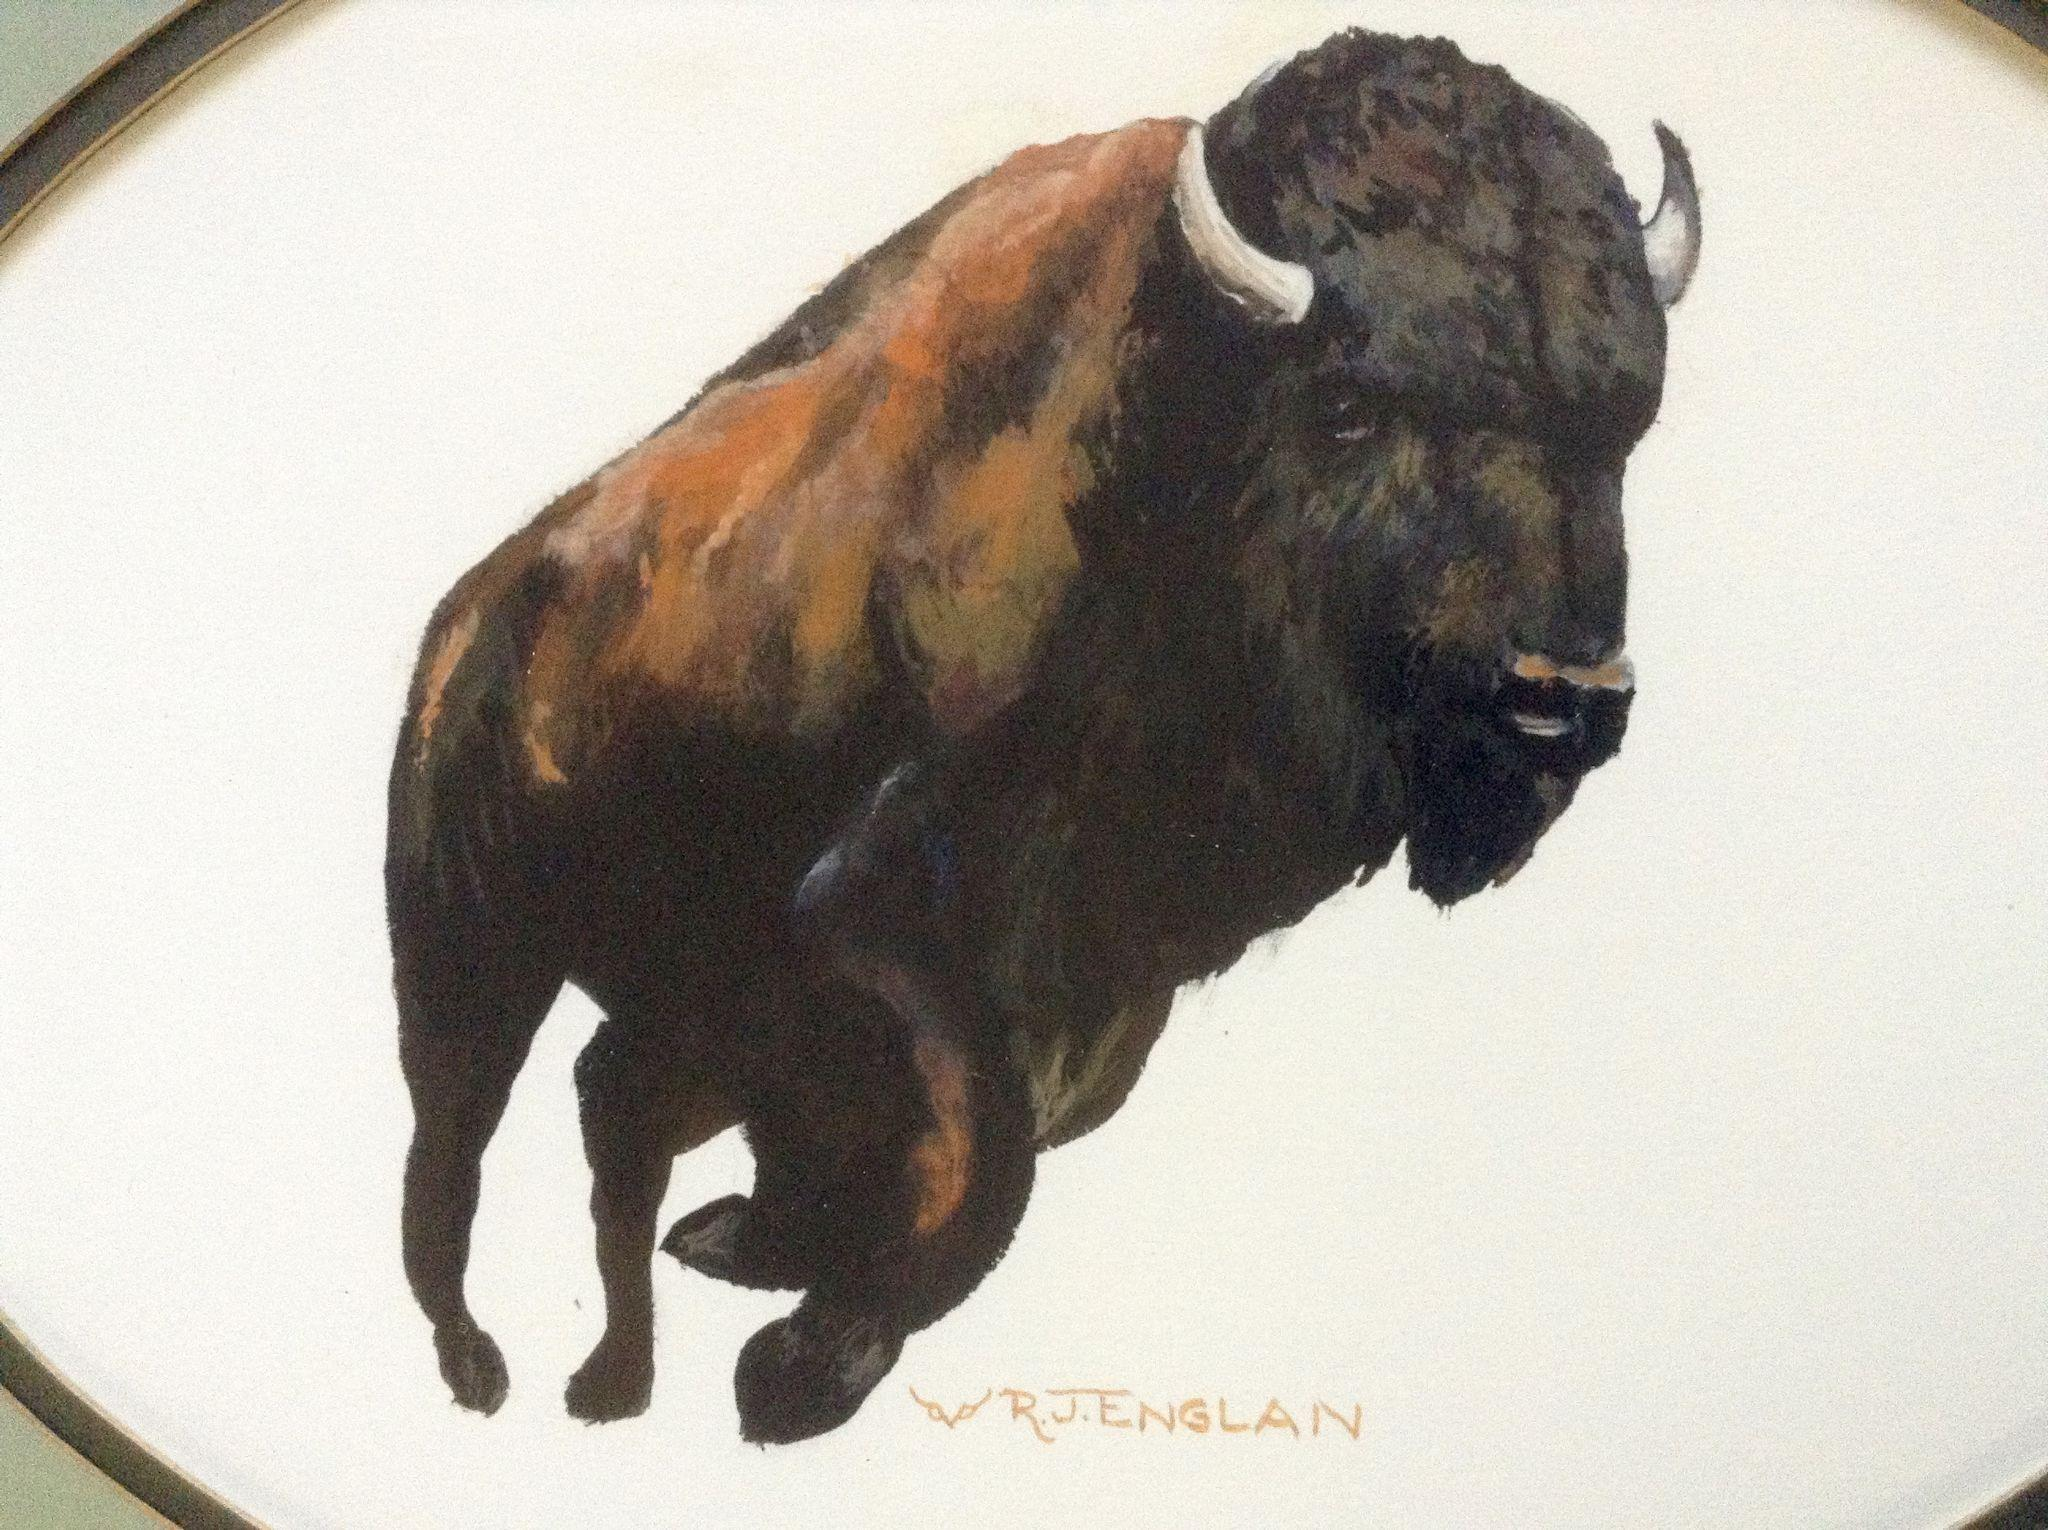 r  j  englan  a running buffalo  gouache watercolor painting works on from gumgumfuninthesun on